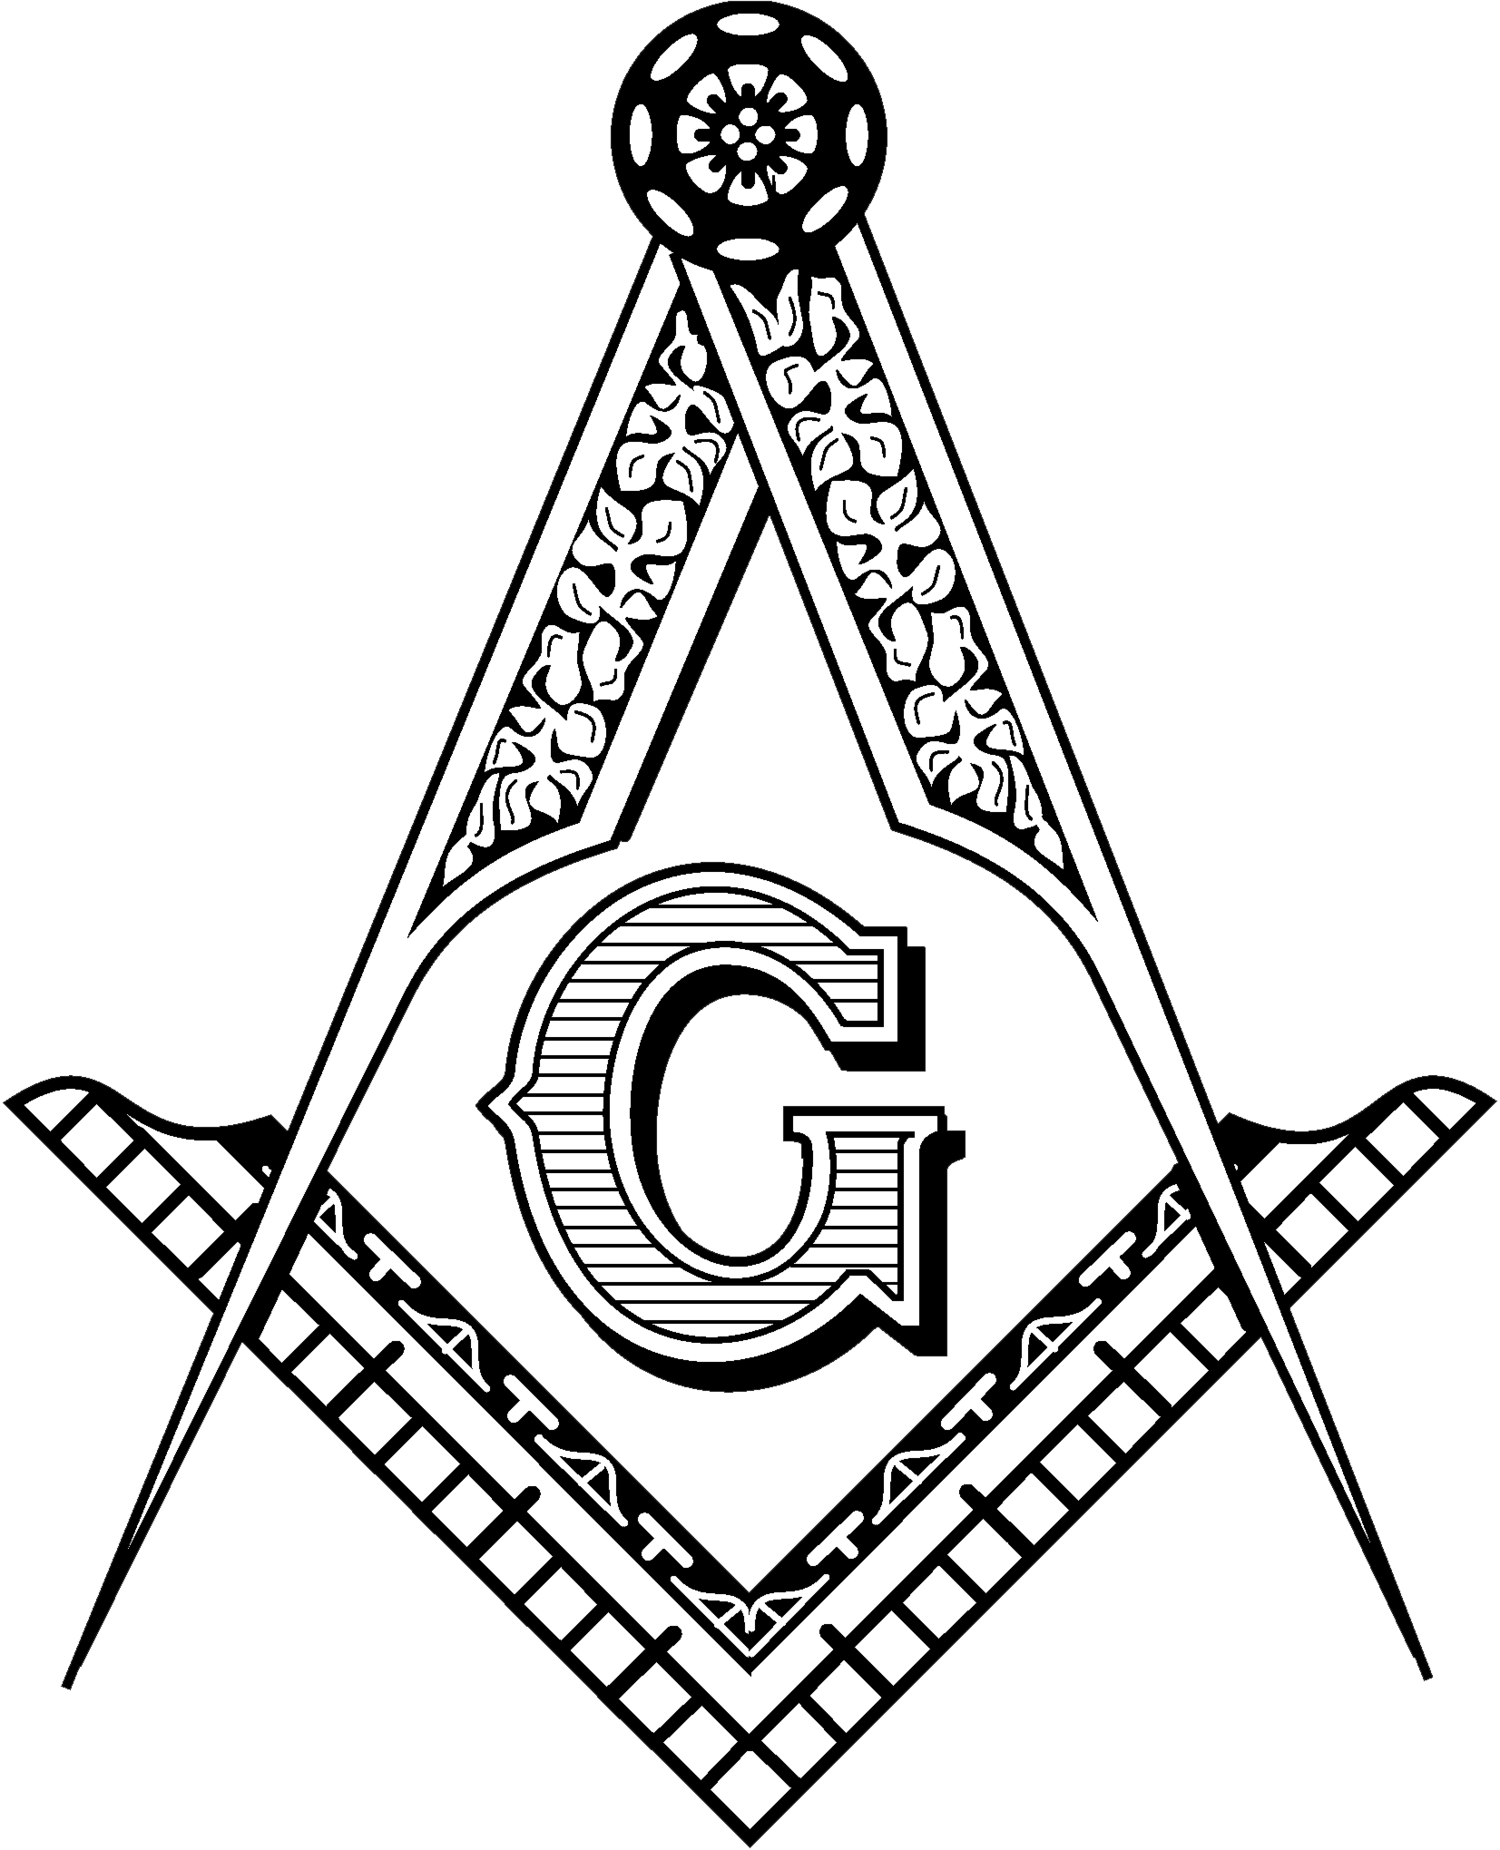 picture free download Chico leland stanford no. Mason clipart masonic lodge.